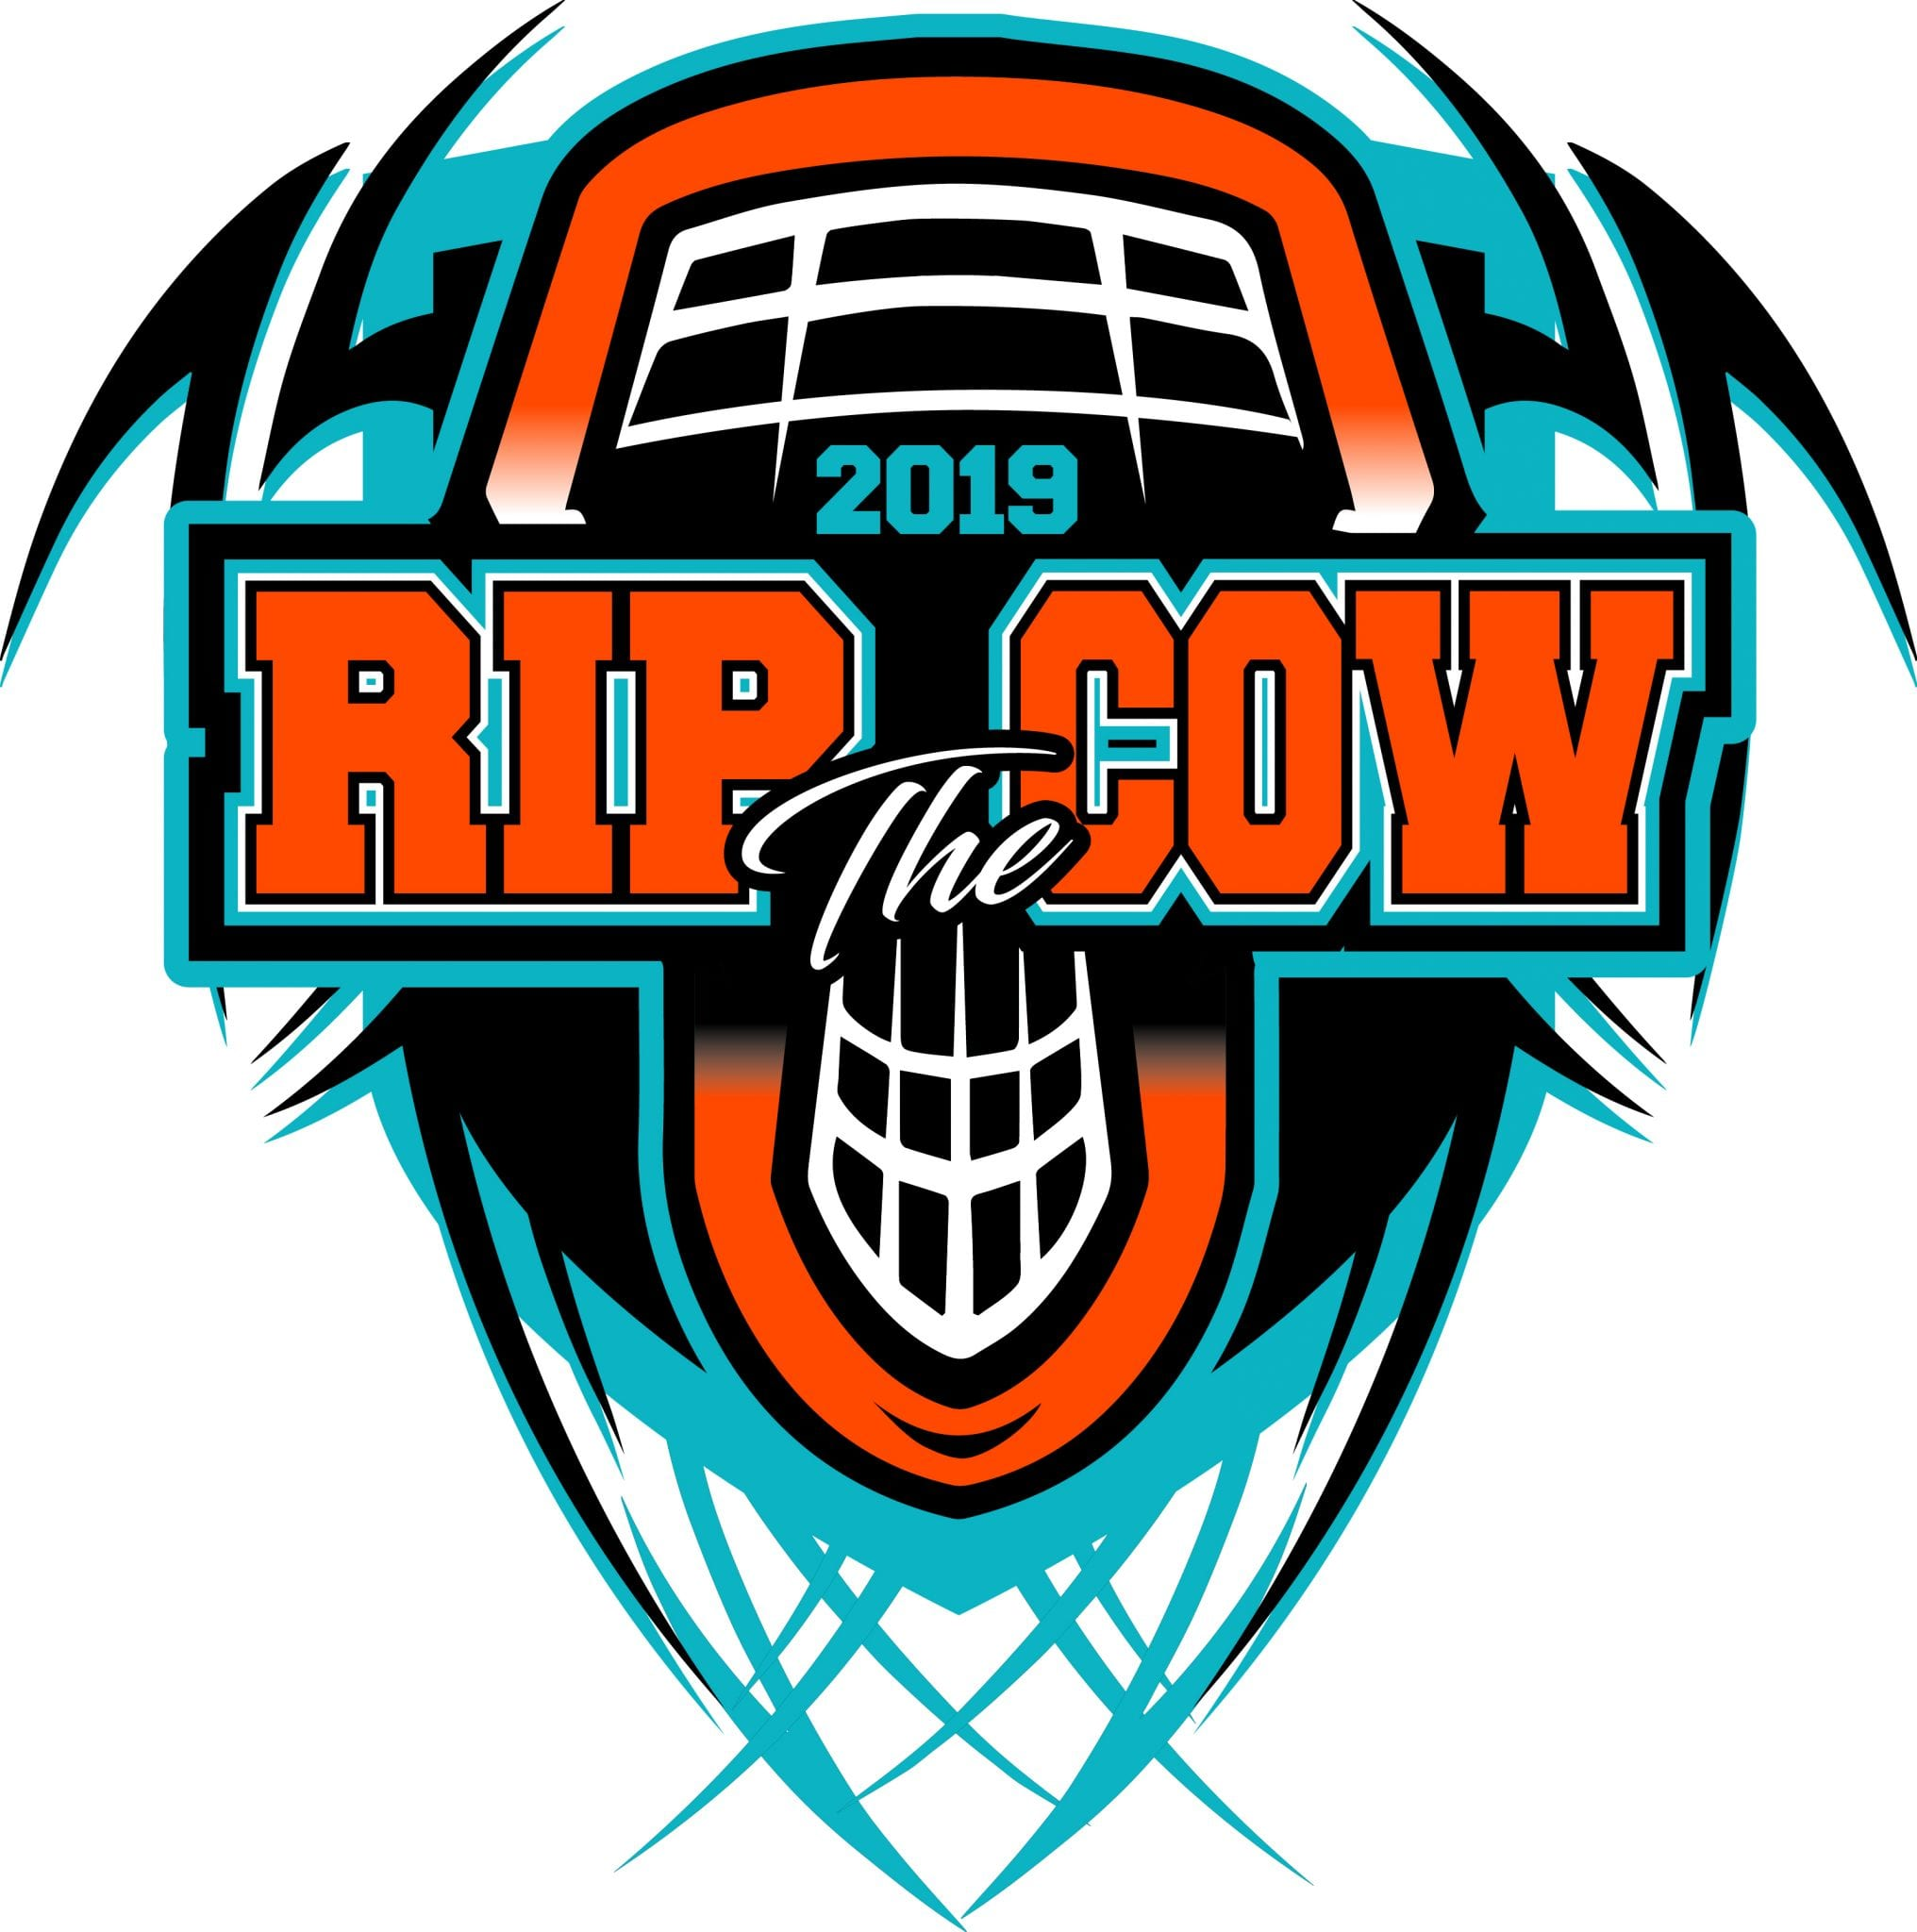 on sale online elegant appearance reasonable price LACROSSE RIP the COW 2019 T-shirt vector logo design for print